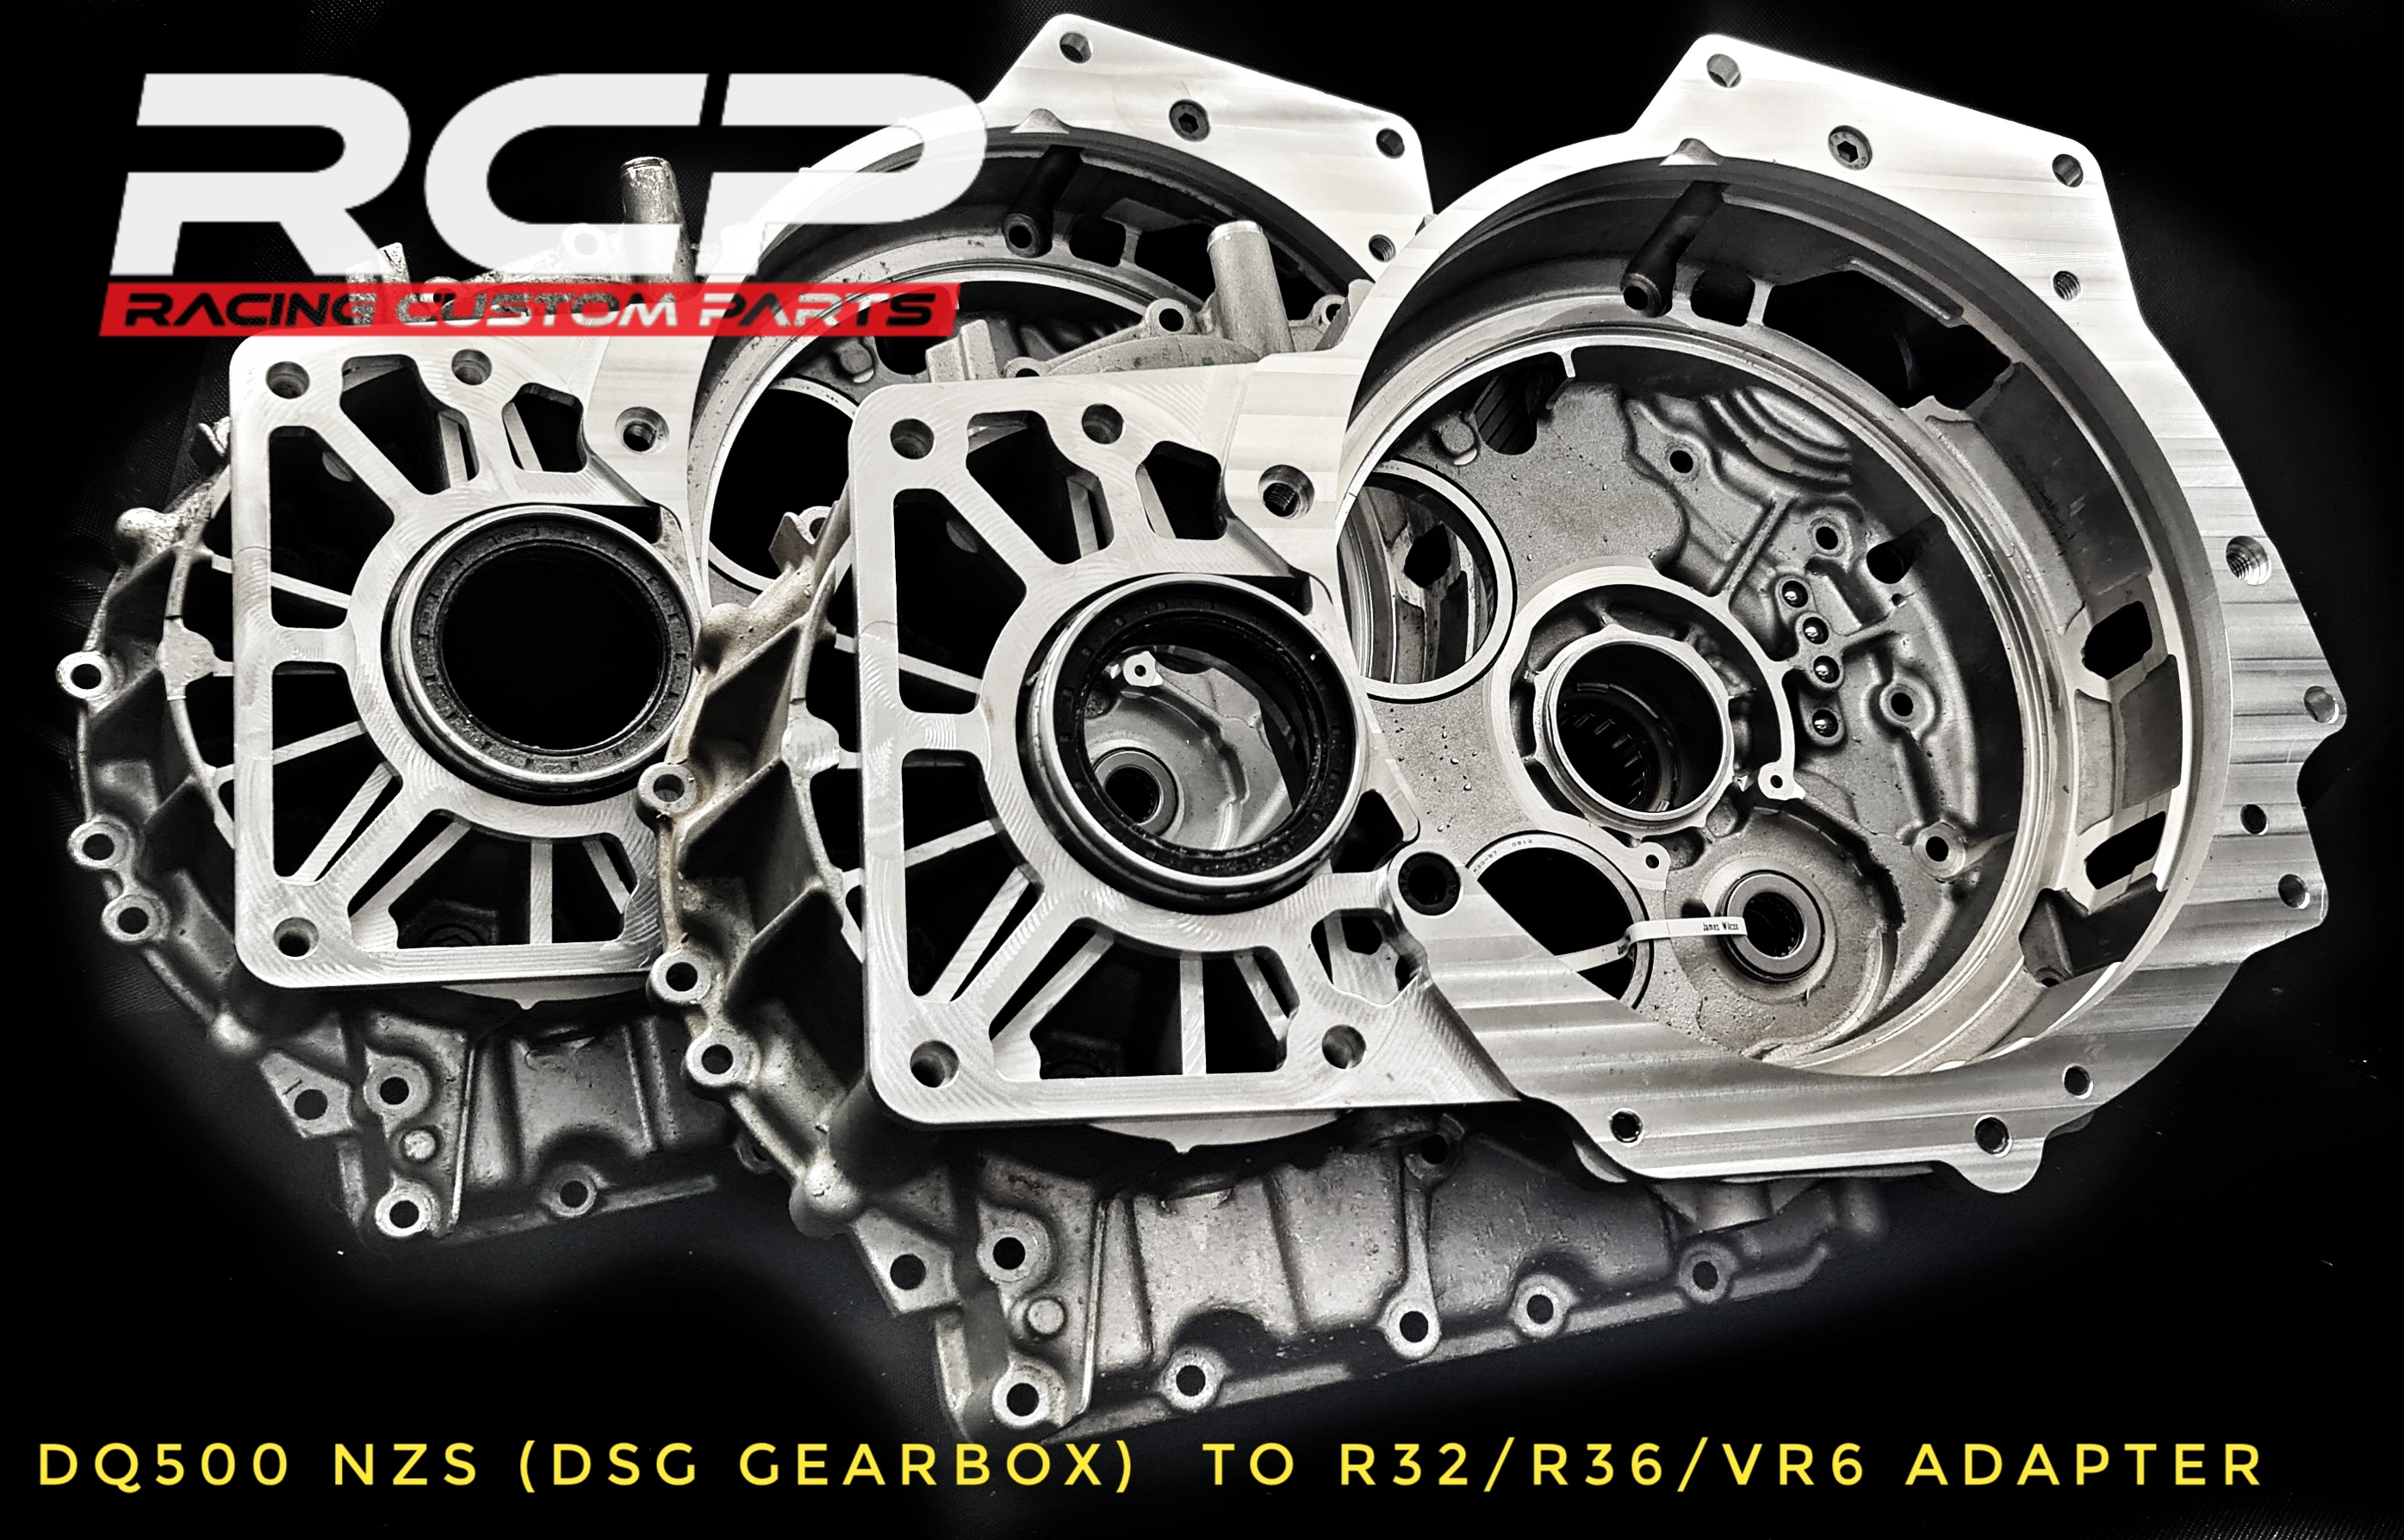 vr6 r32 r36 dsg dq500 automatic gearbox adapter conversion billet cnc racing custom parts